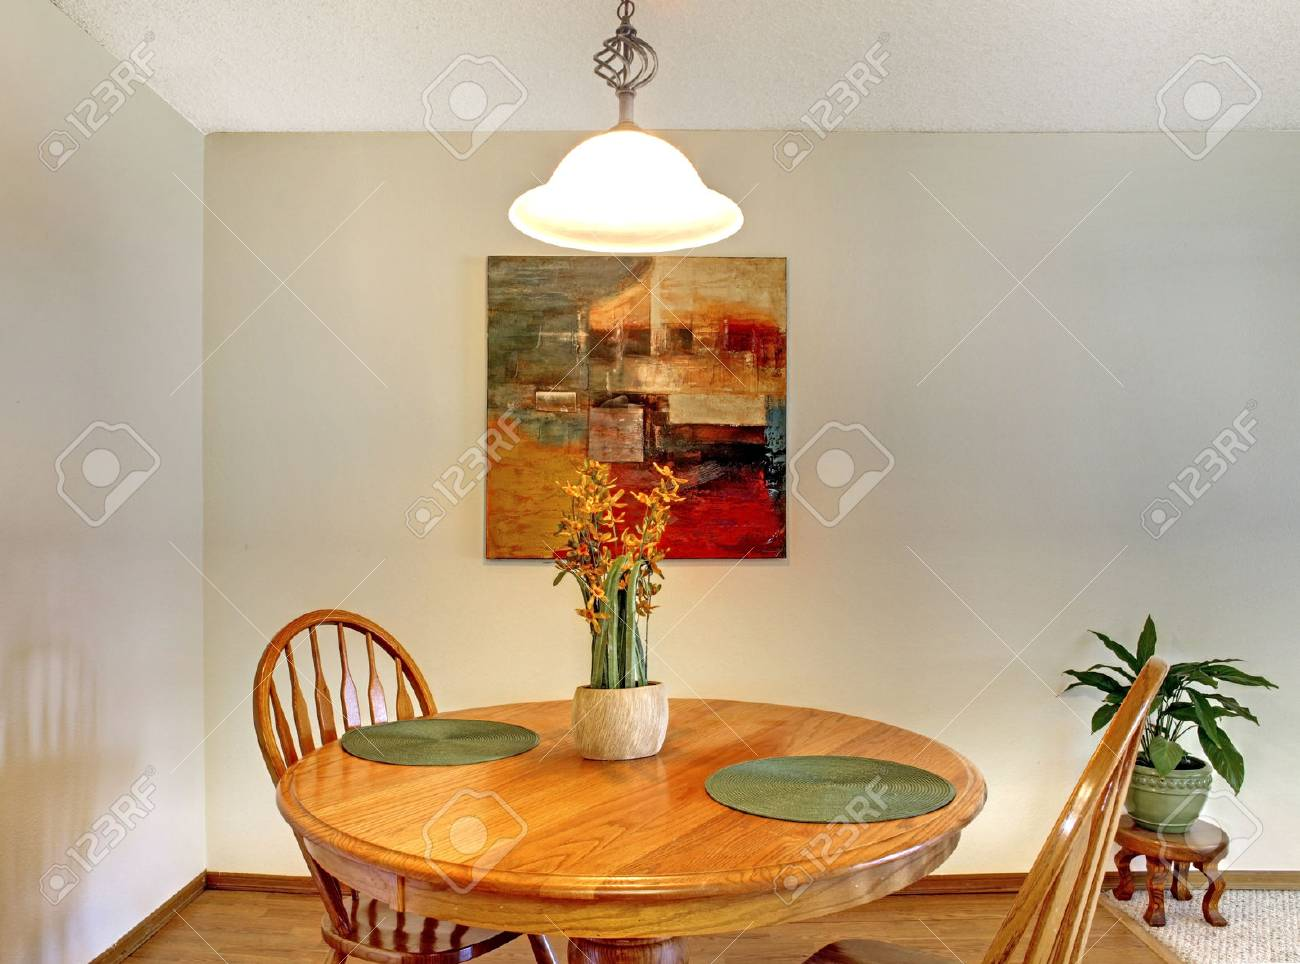 Dining Area With Rustic Dining Table Set Decorated With Flowers Stock Photo Picture And Royalty Free Image Image 28613214